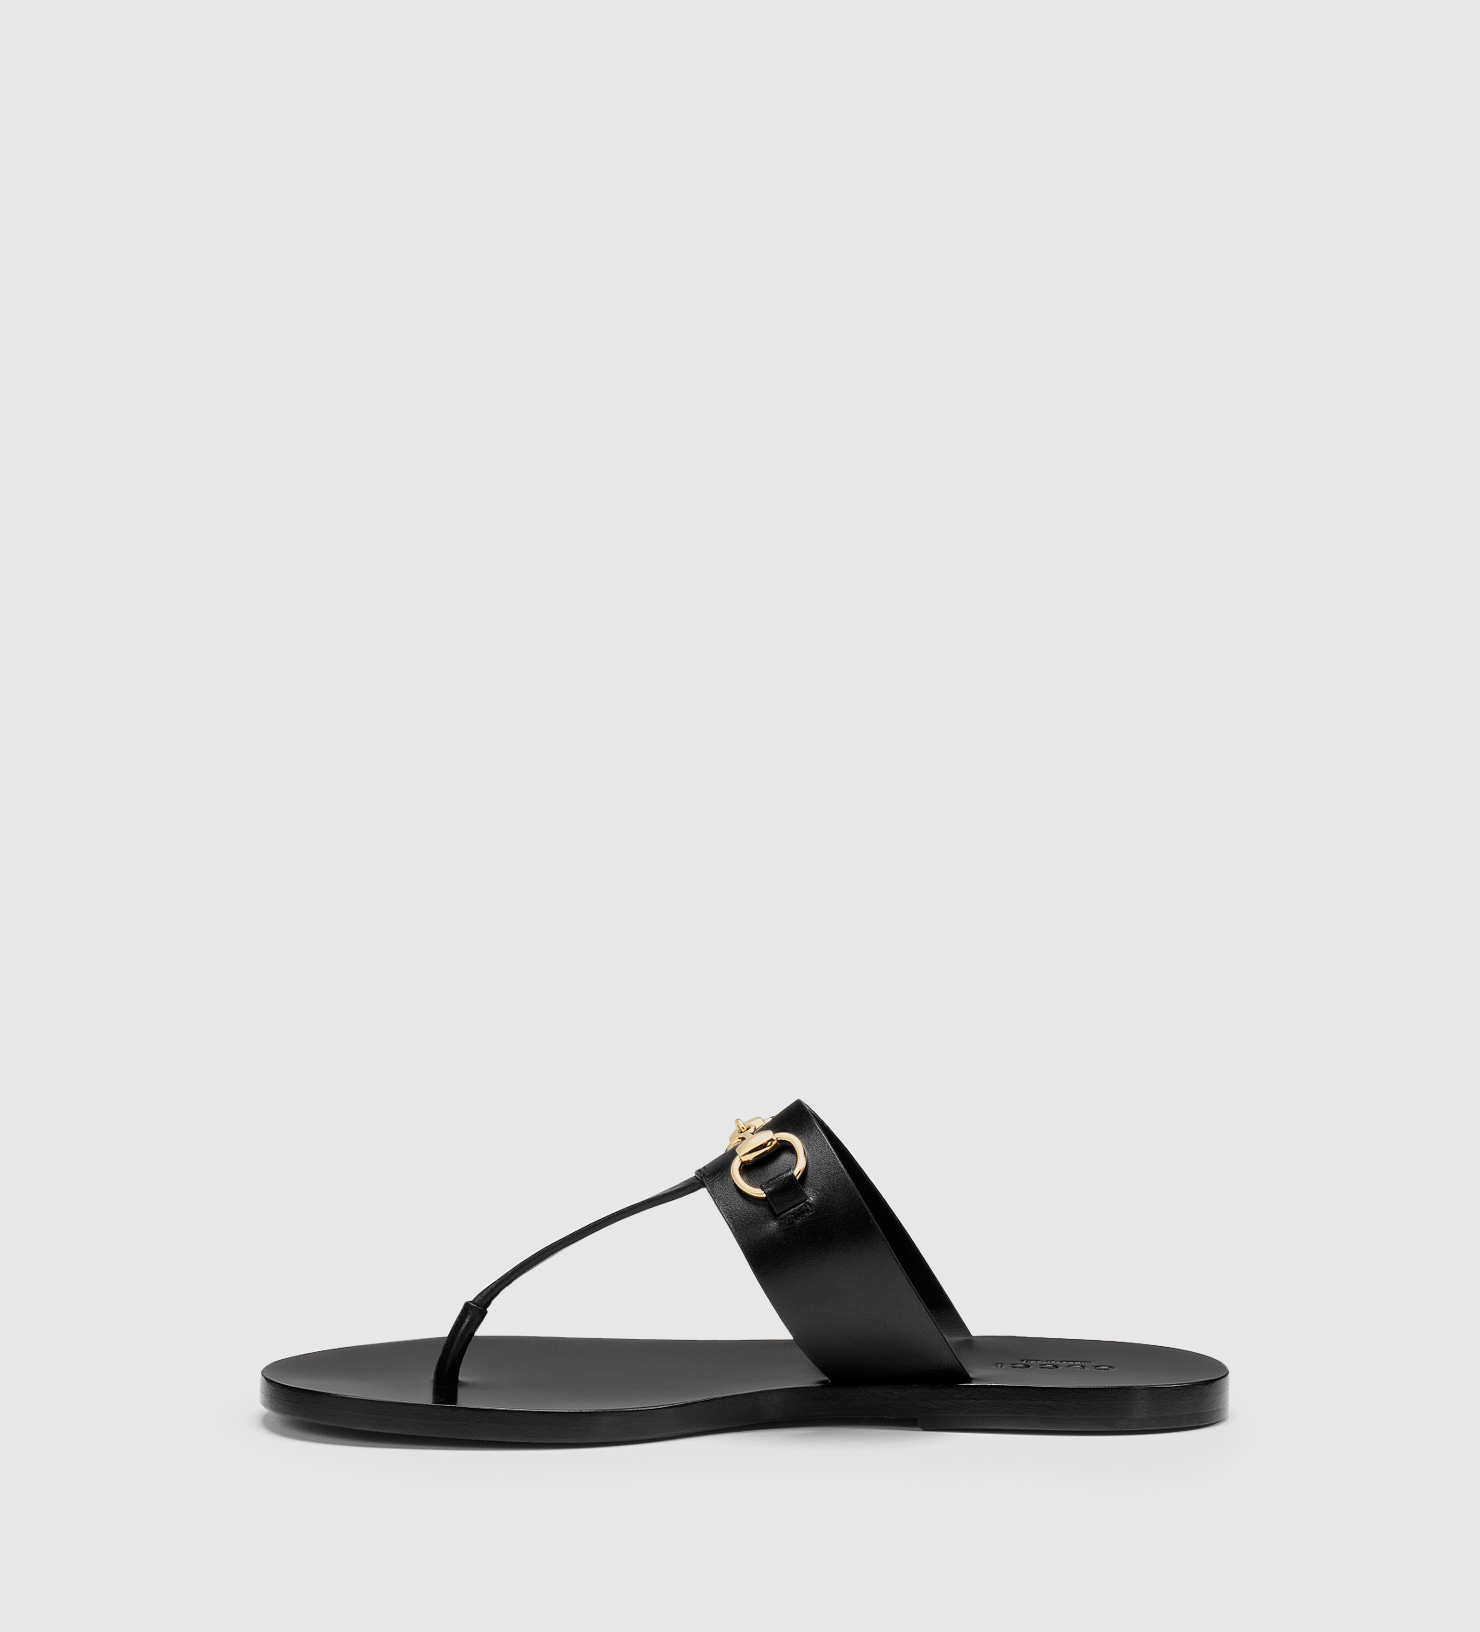 f33aed7b1 Lyst - Gucci Horsebit Leather Thong Sandal in Black